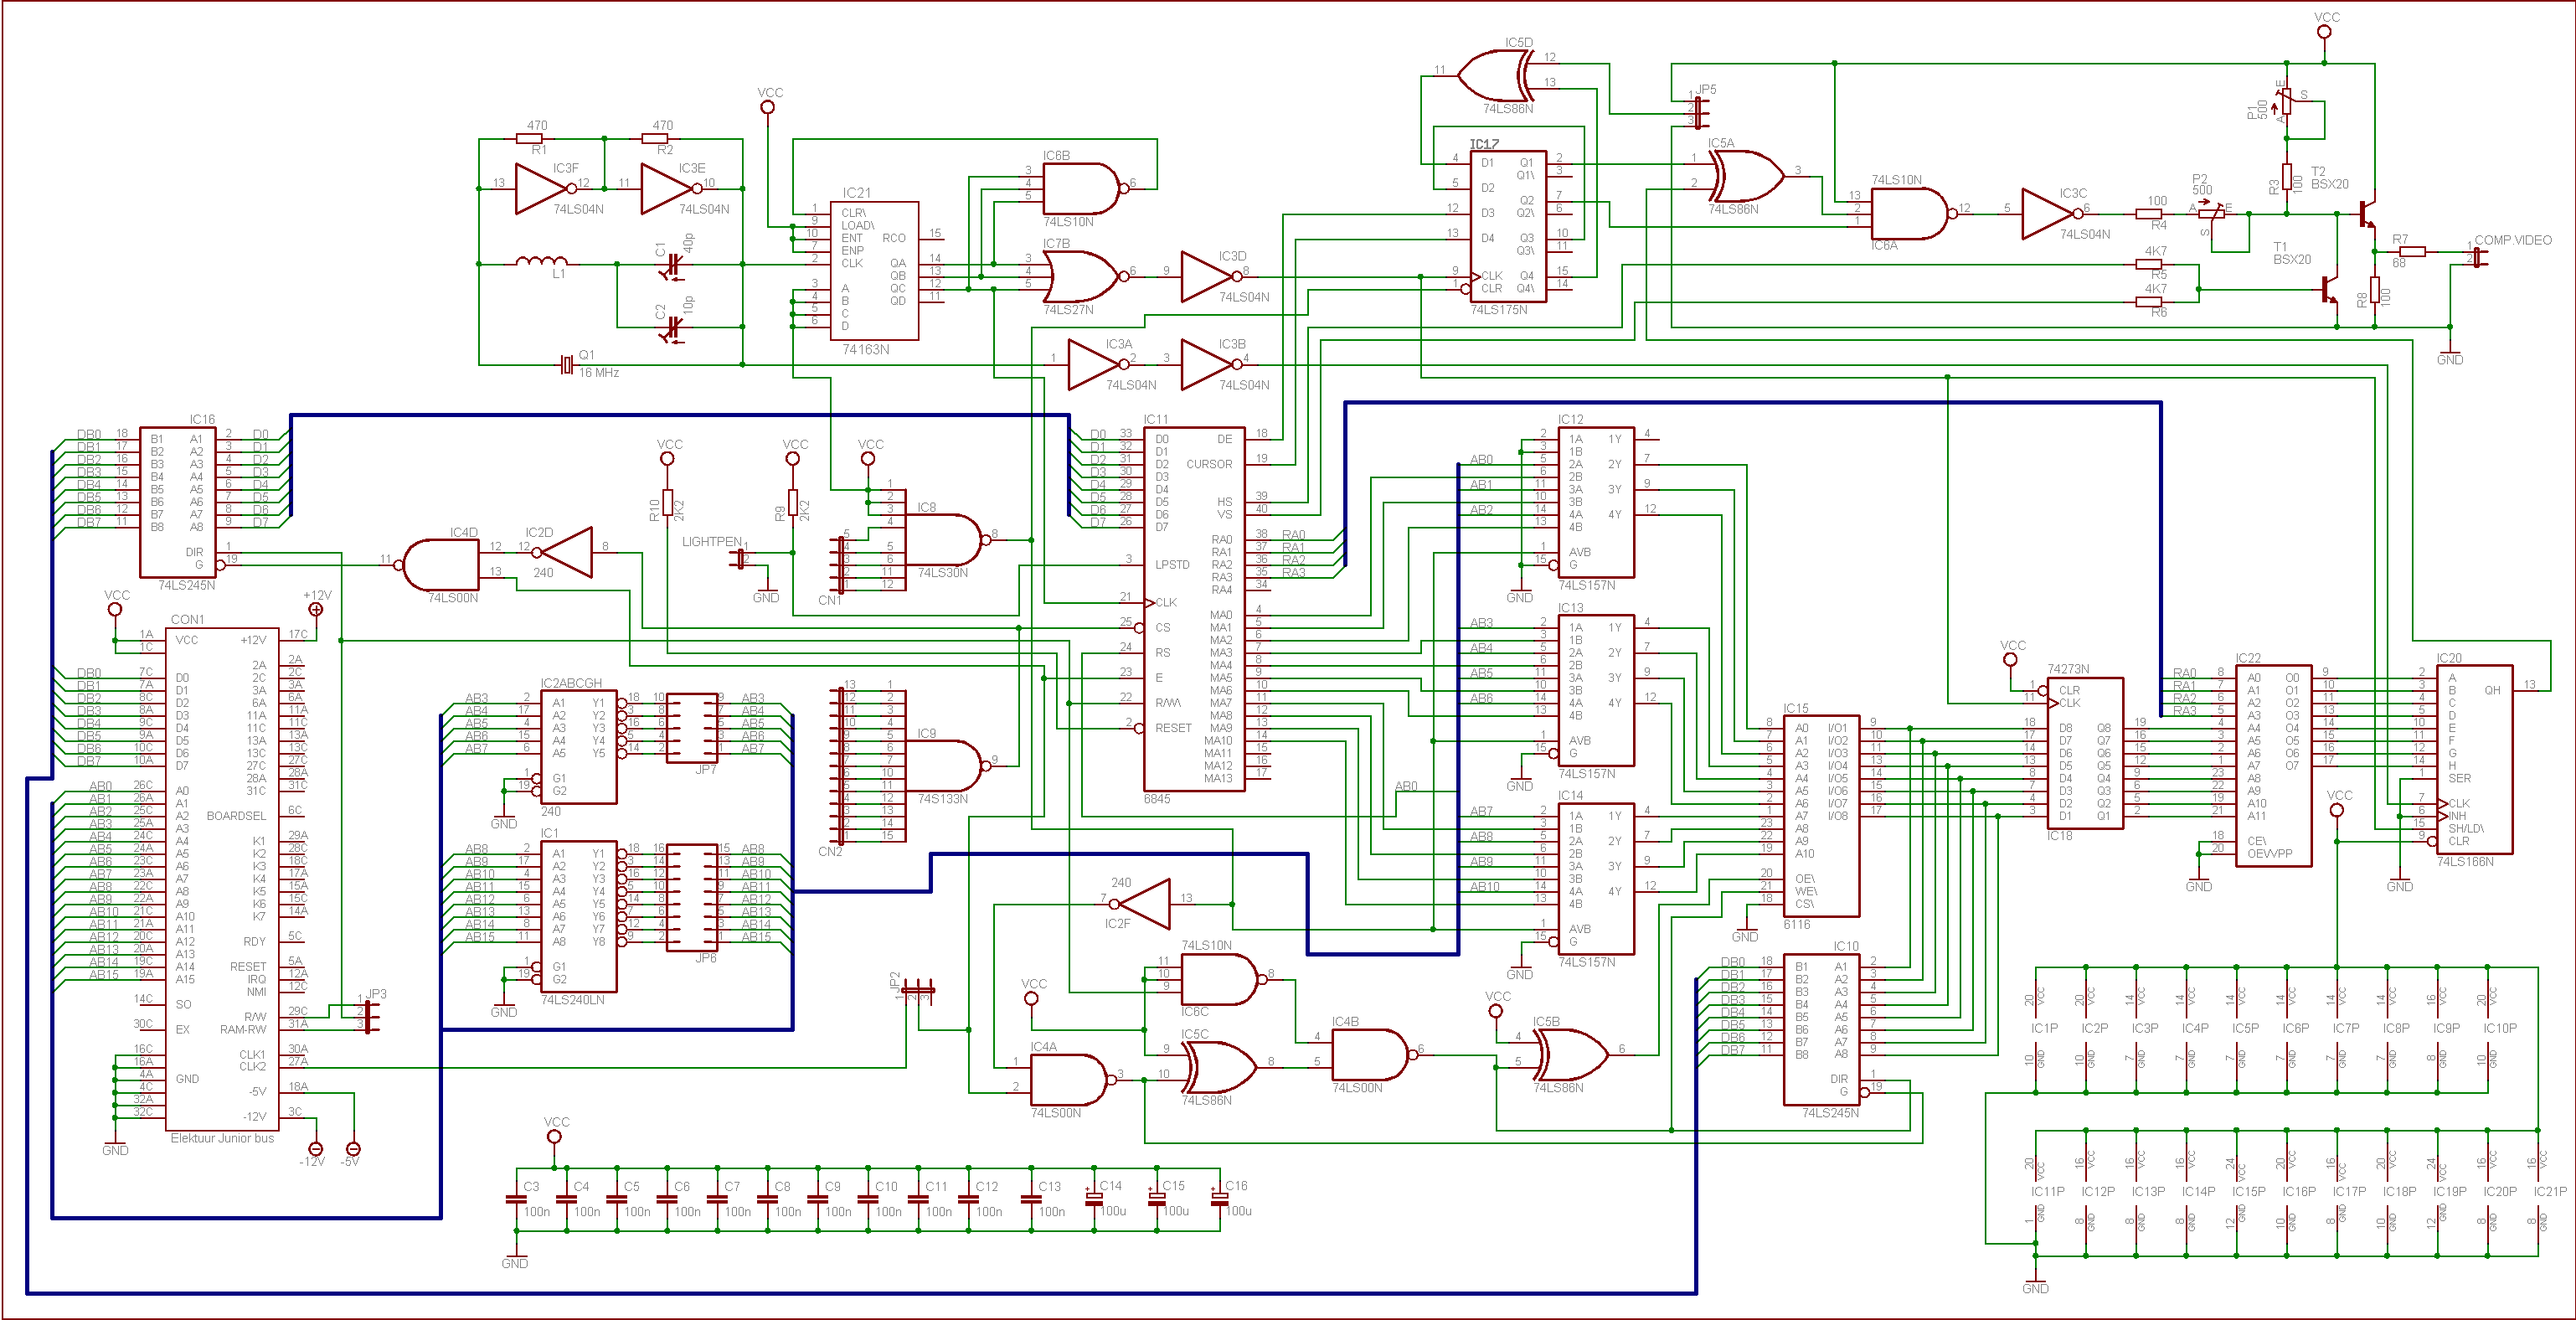 New Electric Drawing Diagram Wiringdiagram Diagramming Diagramm Visuals Visualisation Graphical Check Circuit Diagram Electrical Circuit Diagram Diagram